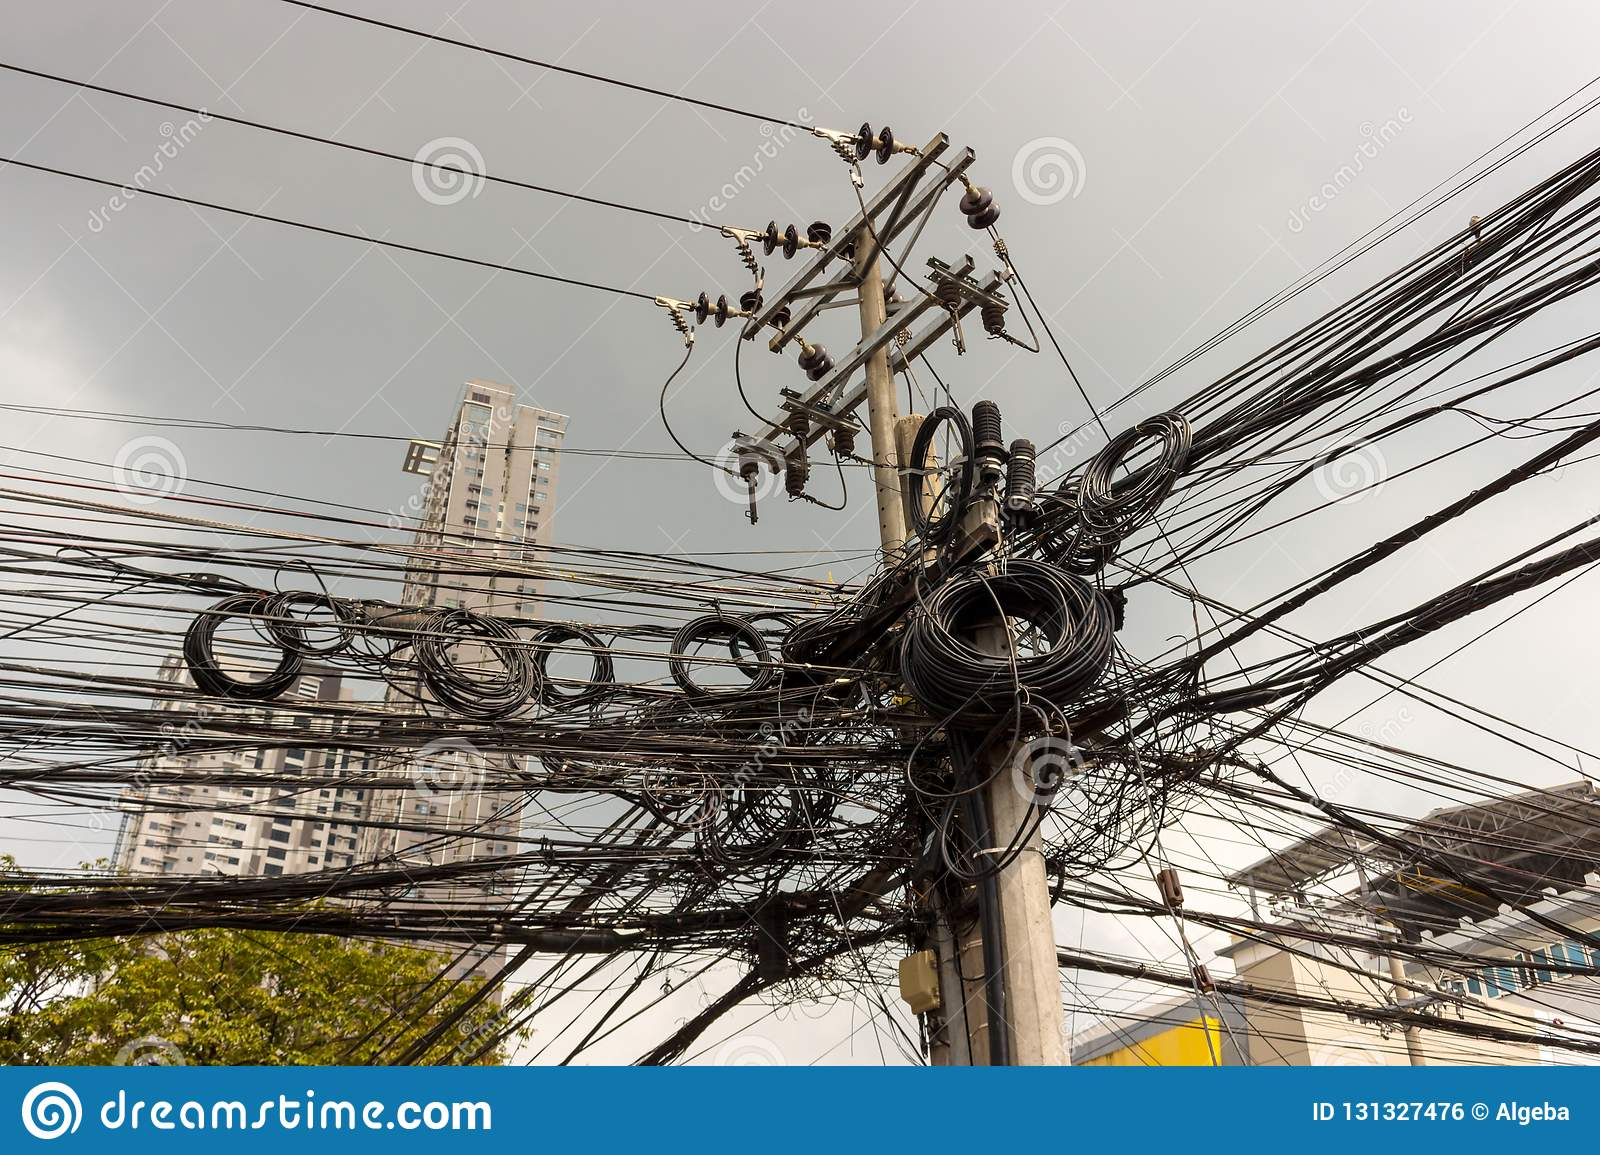 Messy Electrical Wires Stock Photo Image Of Energy 131327476